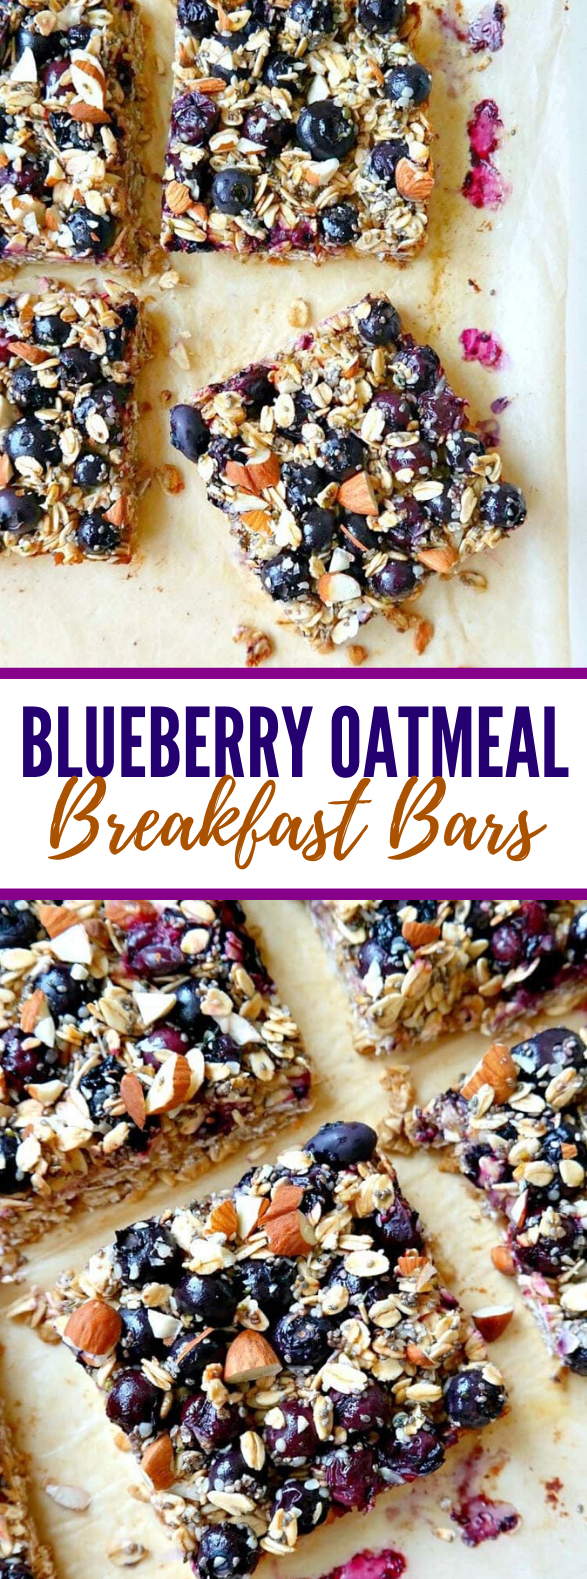 Blueberry Oatmeal Breakfast Bars #healthy #vitamin